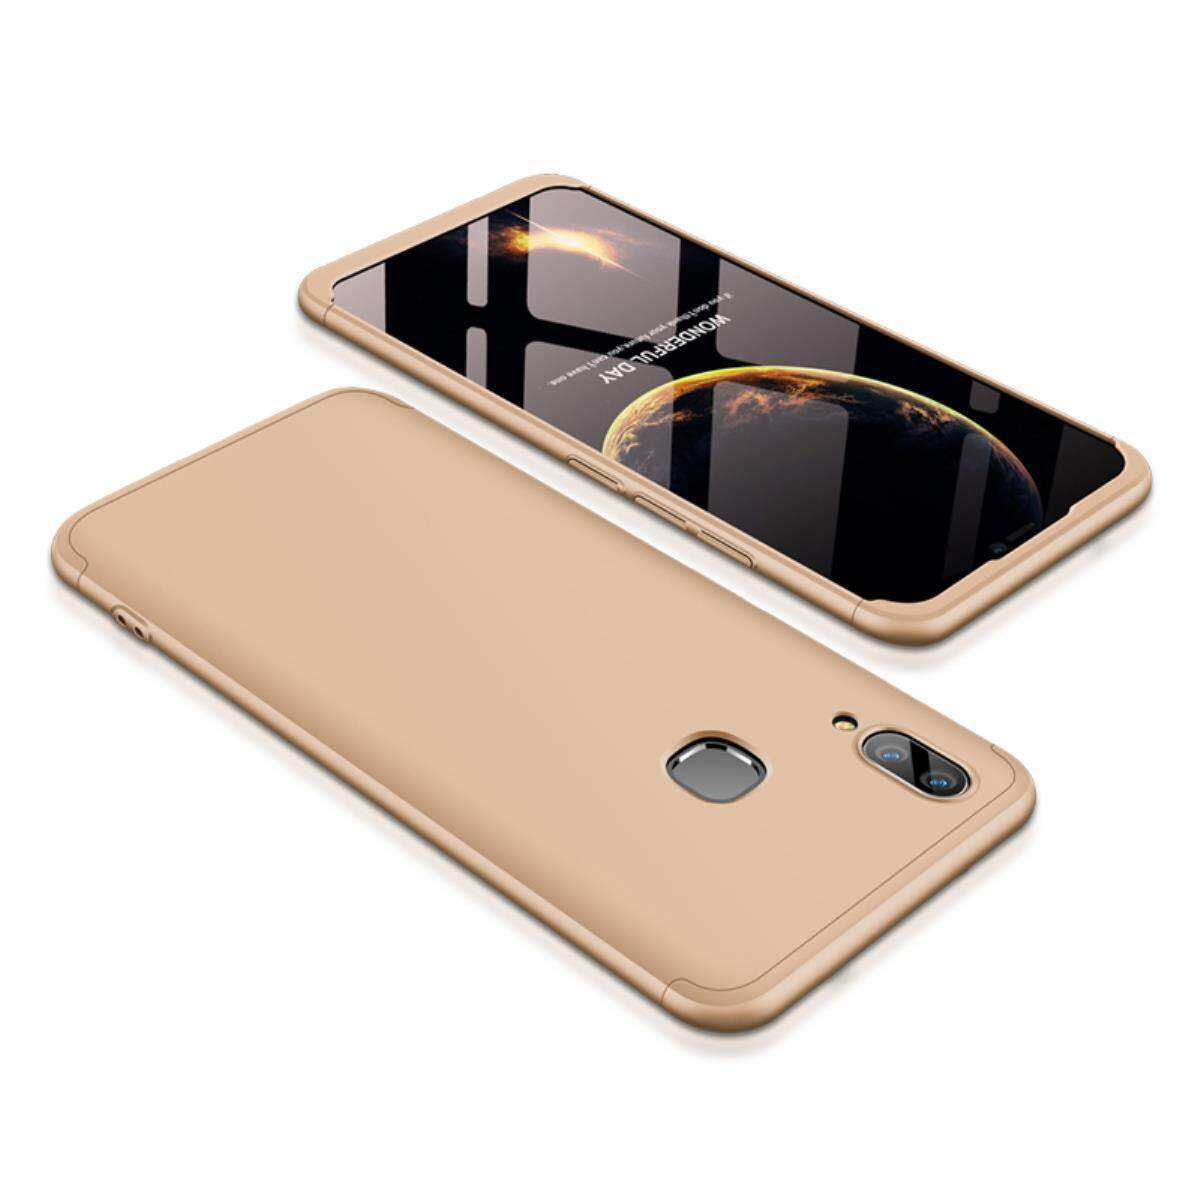 Mofi For Asus Zenfone 3 Max Zc553kl Hard Pc Plastic Case Anti Knock 2in1 Military Armor Soft 55 Hicase Vivo V9 Y85 Detachable In 1 Combo Frosted